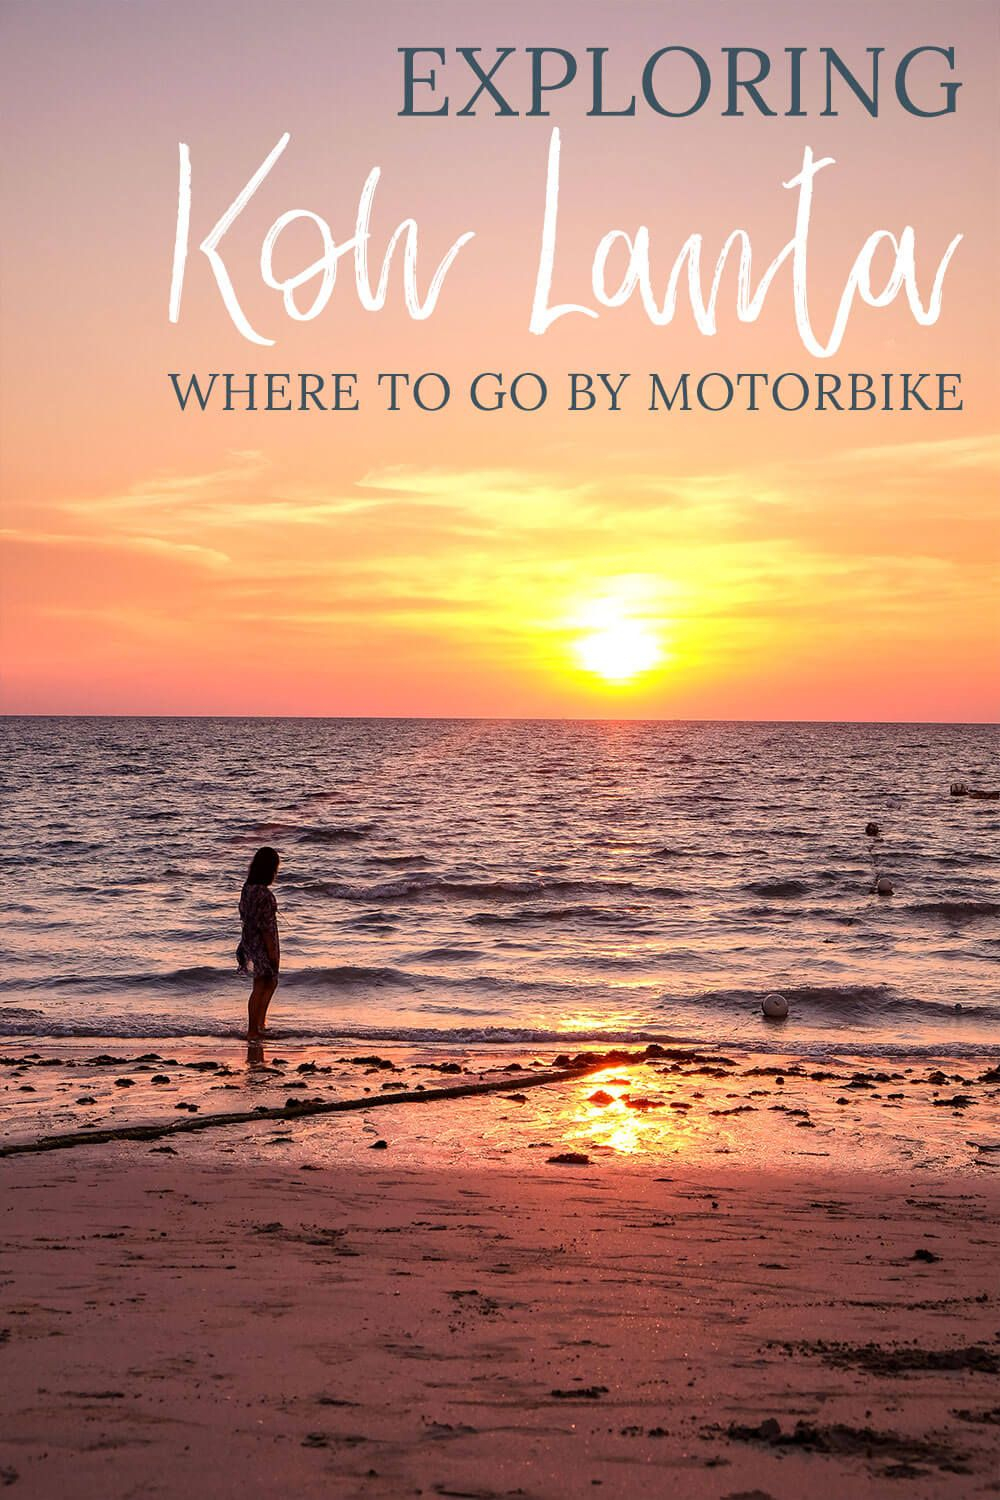 Renting a motorbike is one of the best things to do in Koh Lanta! Find out where you need to go to explore the island's beautiful southern beaches. Tips on driving a motorbike in Thailand are included as well if this will be your first time on a scooter. I think Koh Lanta is the perfect place to learn and there are long stretches of road without many hills. You definitely don't want to miss out on seeing these gorgeous beaches!